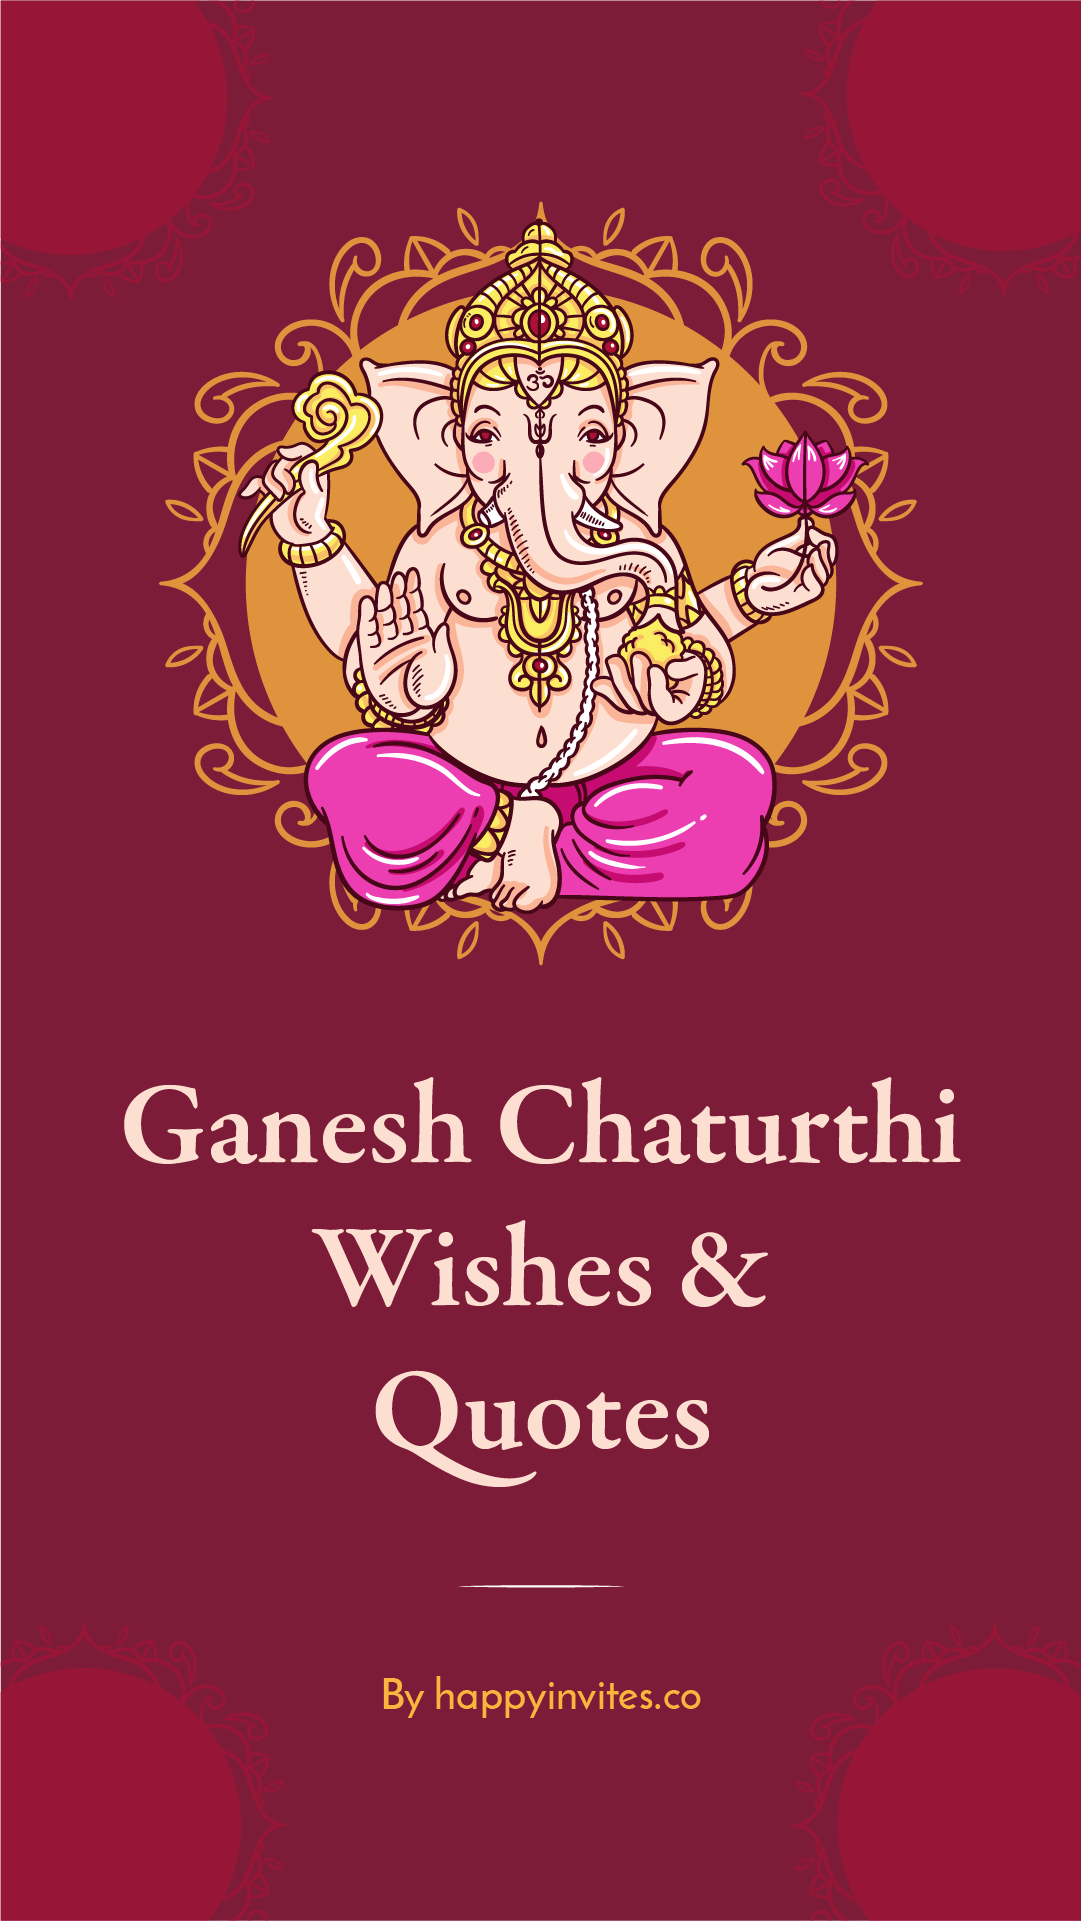 Ganesh Chaturthi Wishes Quotes Free E Card Maker Happy Invites Happy Ganesh Chaturthi Wishes Ganesh Vinayaka Chaturthi Wishes